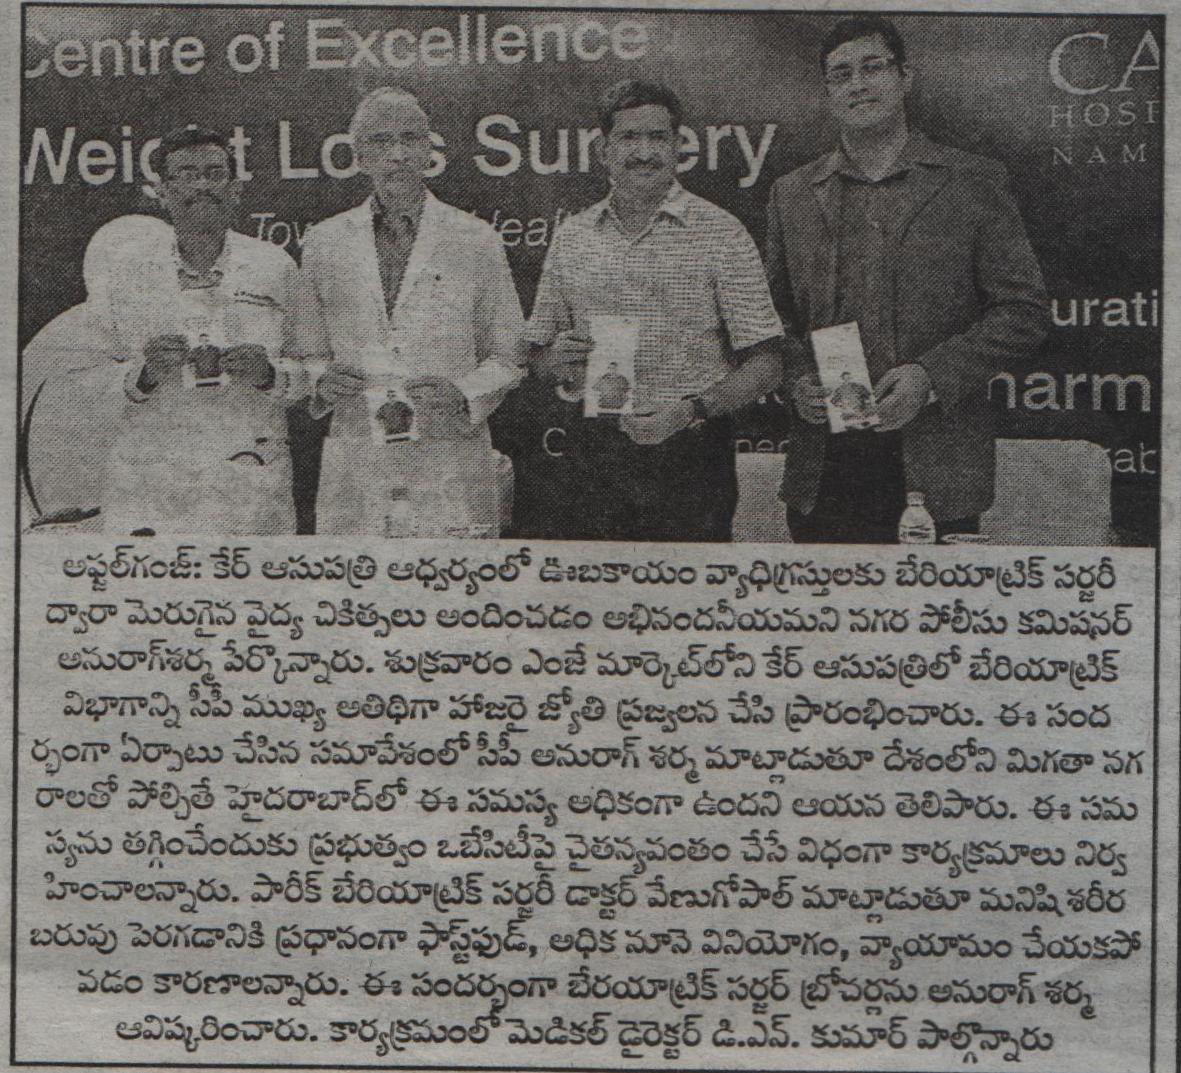 Obesity can be treated with bariatric surgery, the best weight loss surgery in Hyderabad - Dr Venugopal Pareek, Specialist Bariatric Surgeon India